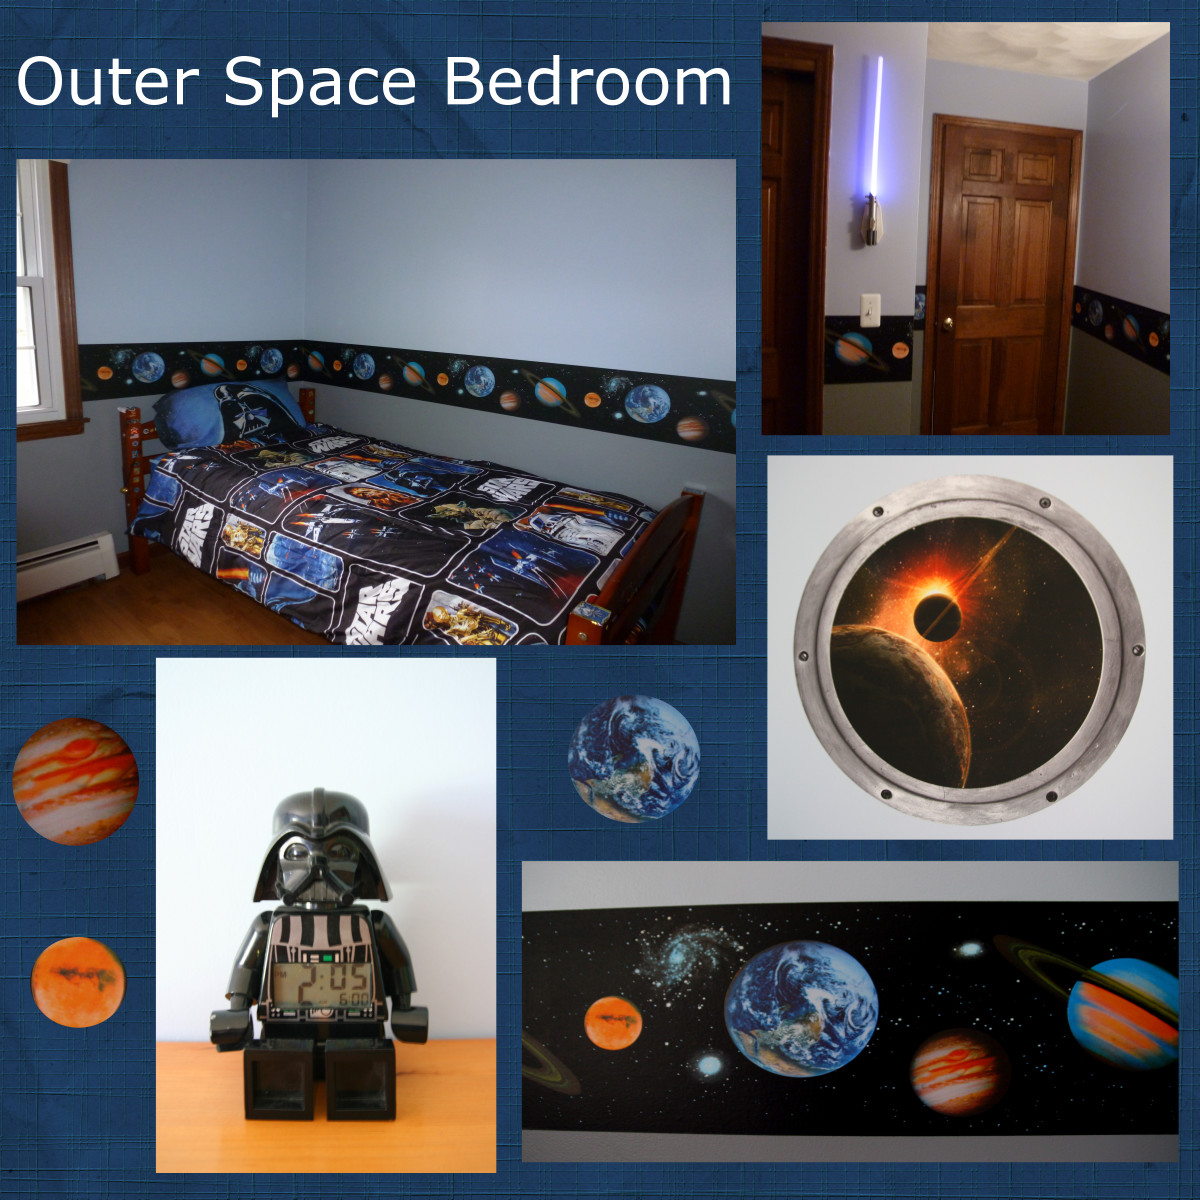 Design a colorful and interesting outer space themed bedroom.